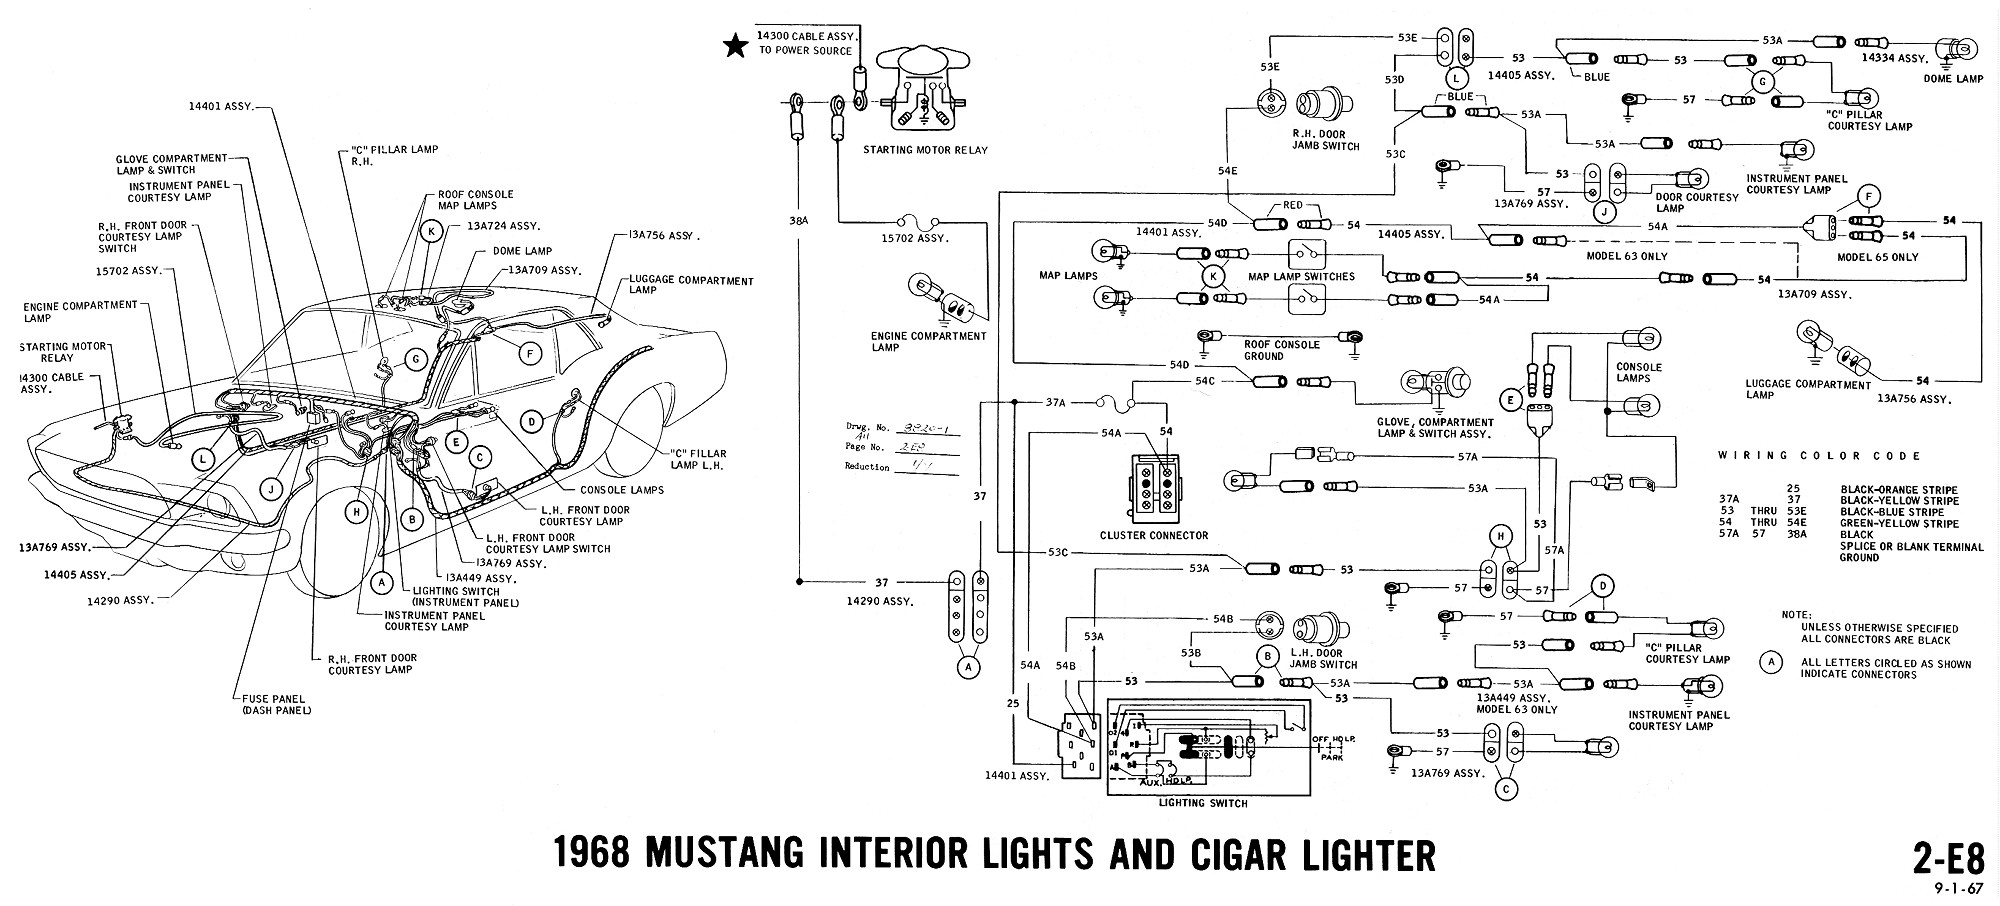 Mustang Ignition Switch Schematic Diagram on 68 mustang fuse panel diagram, 68 mustang horn wiring diagram, 68 mustang alternator wiring diagram, 68 mustang brake pedal diagram,